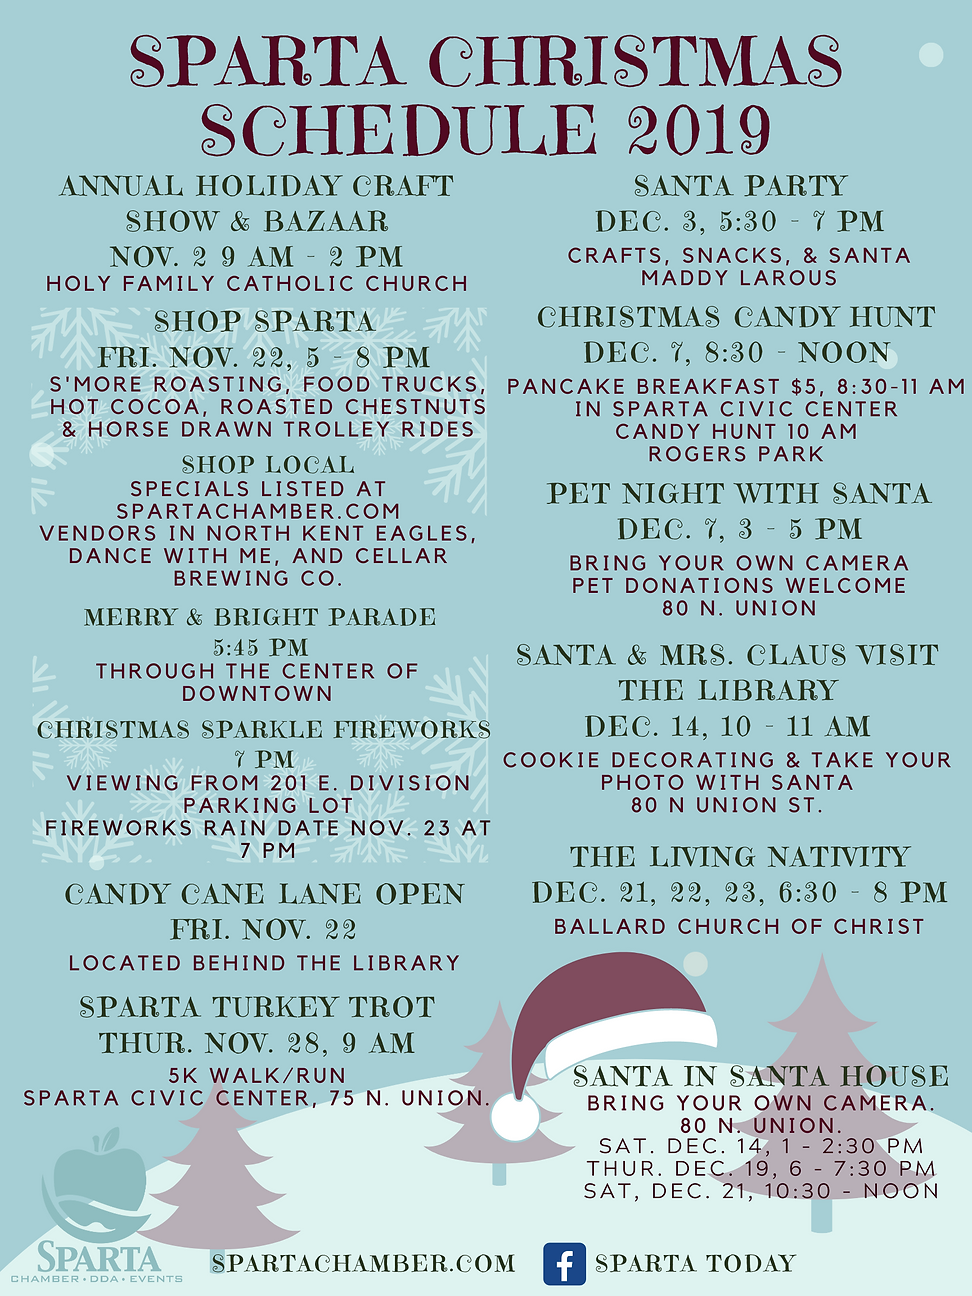 Sparta Christmas Schedule.png